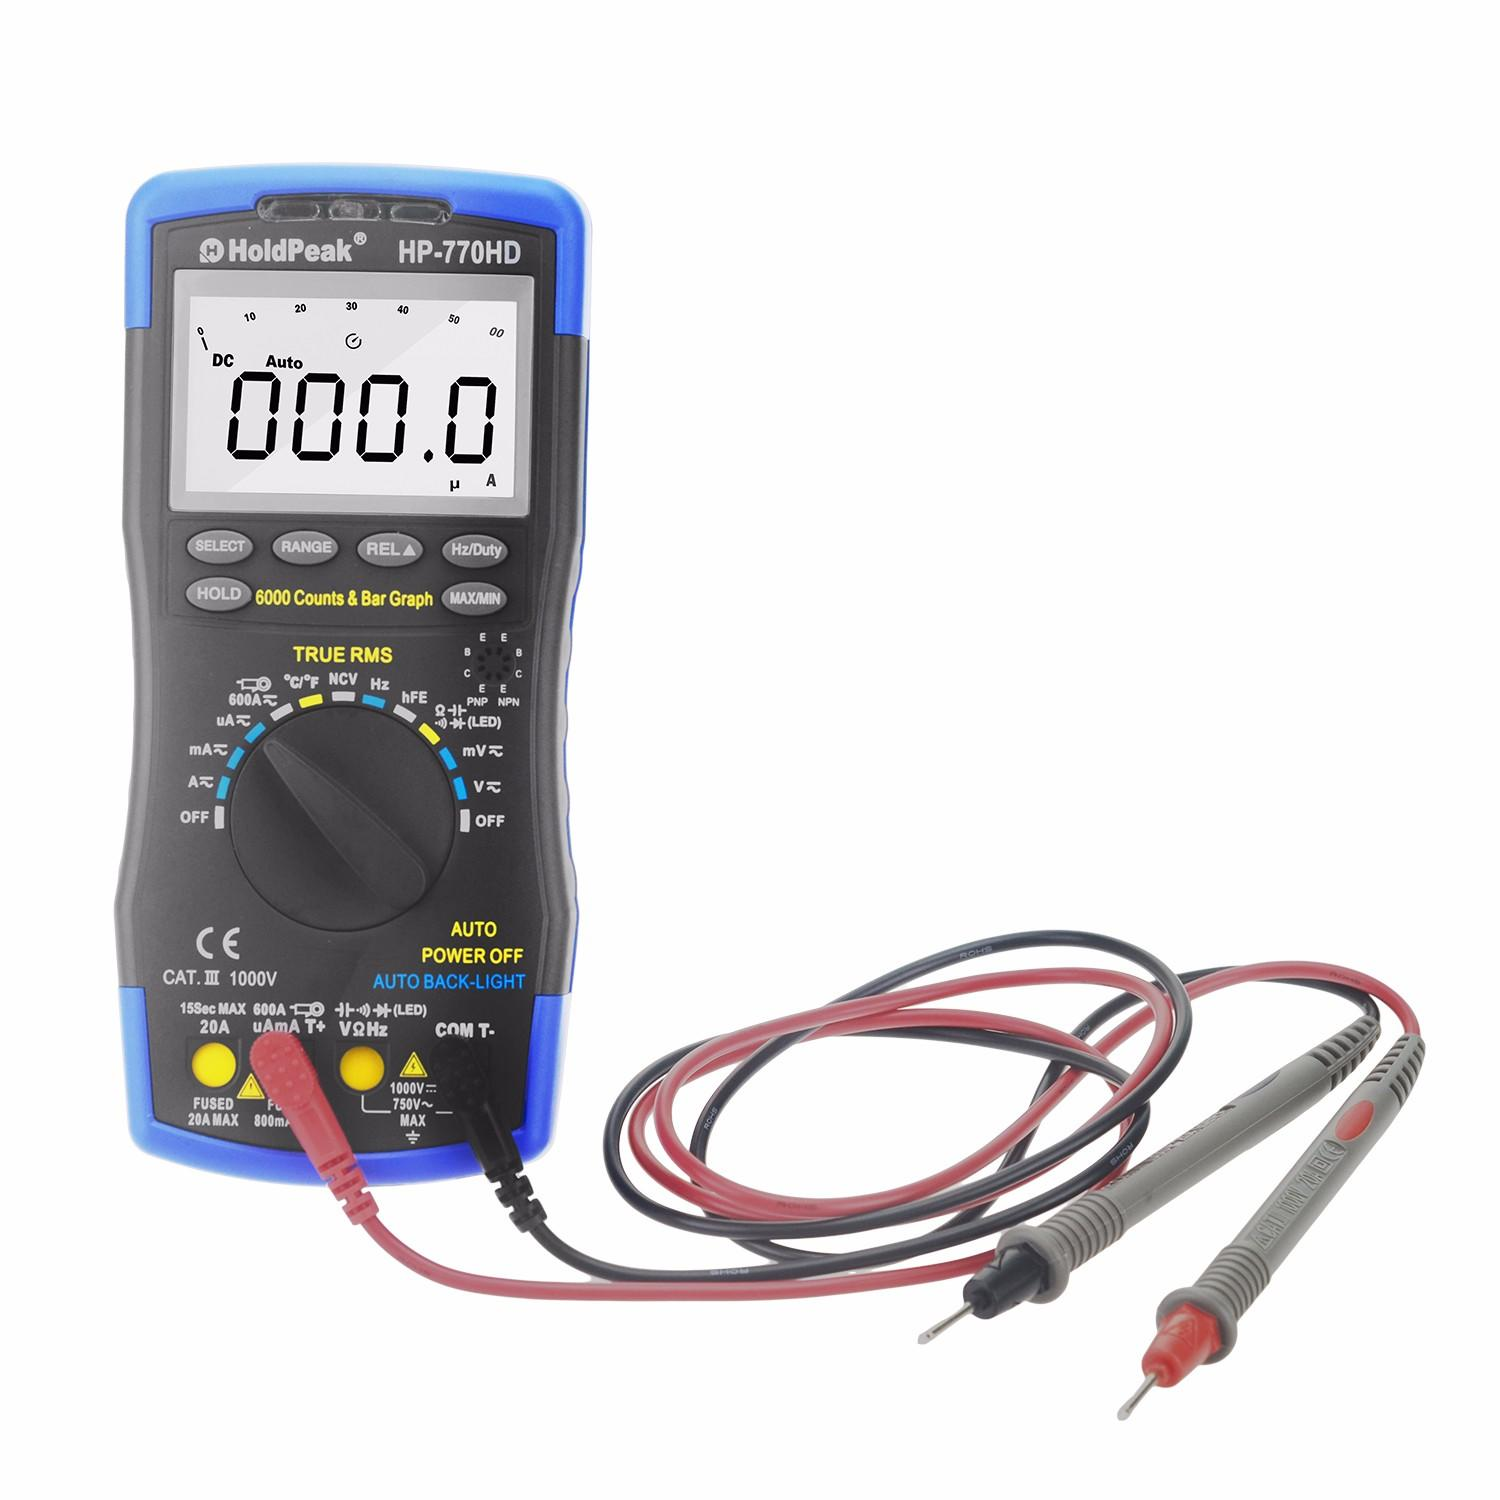 HoldPeak rms digital multimeter manual company for electronic-2